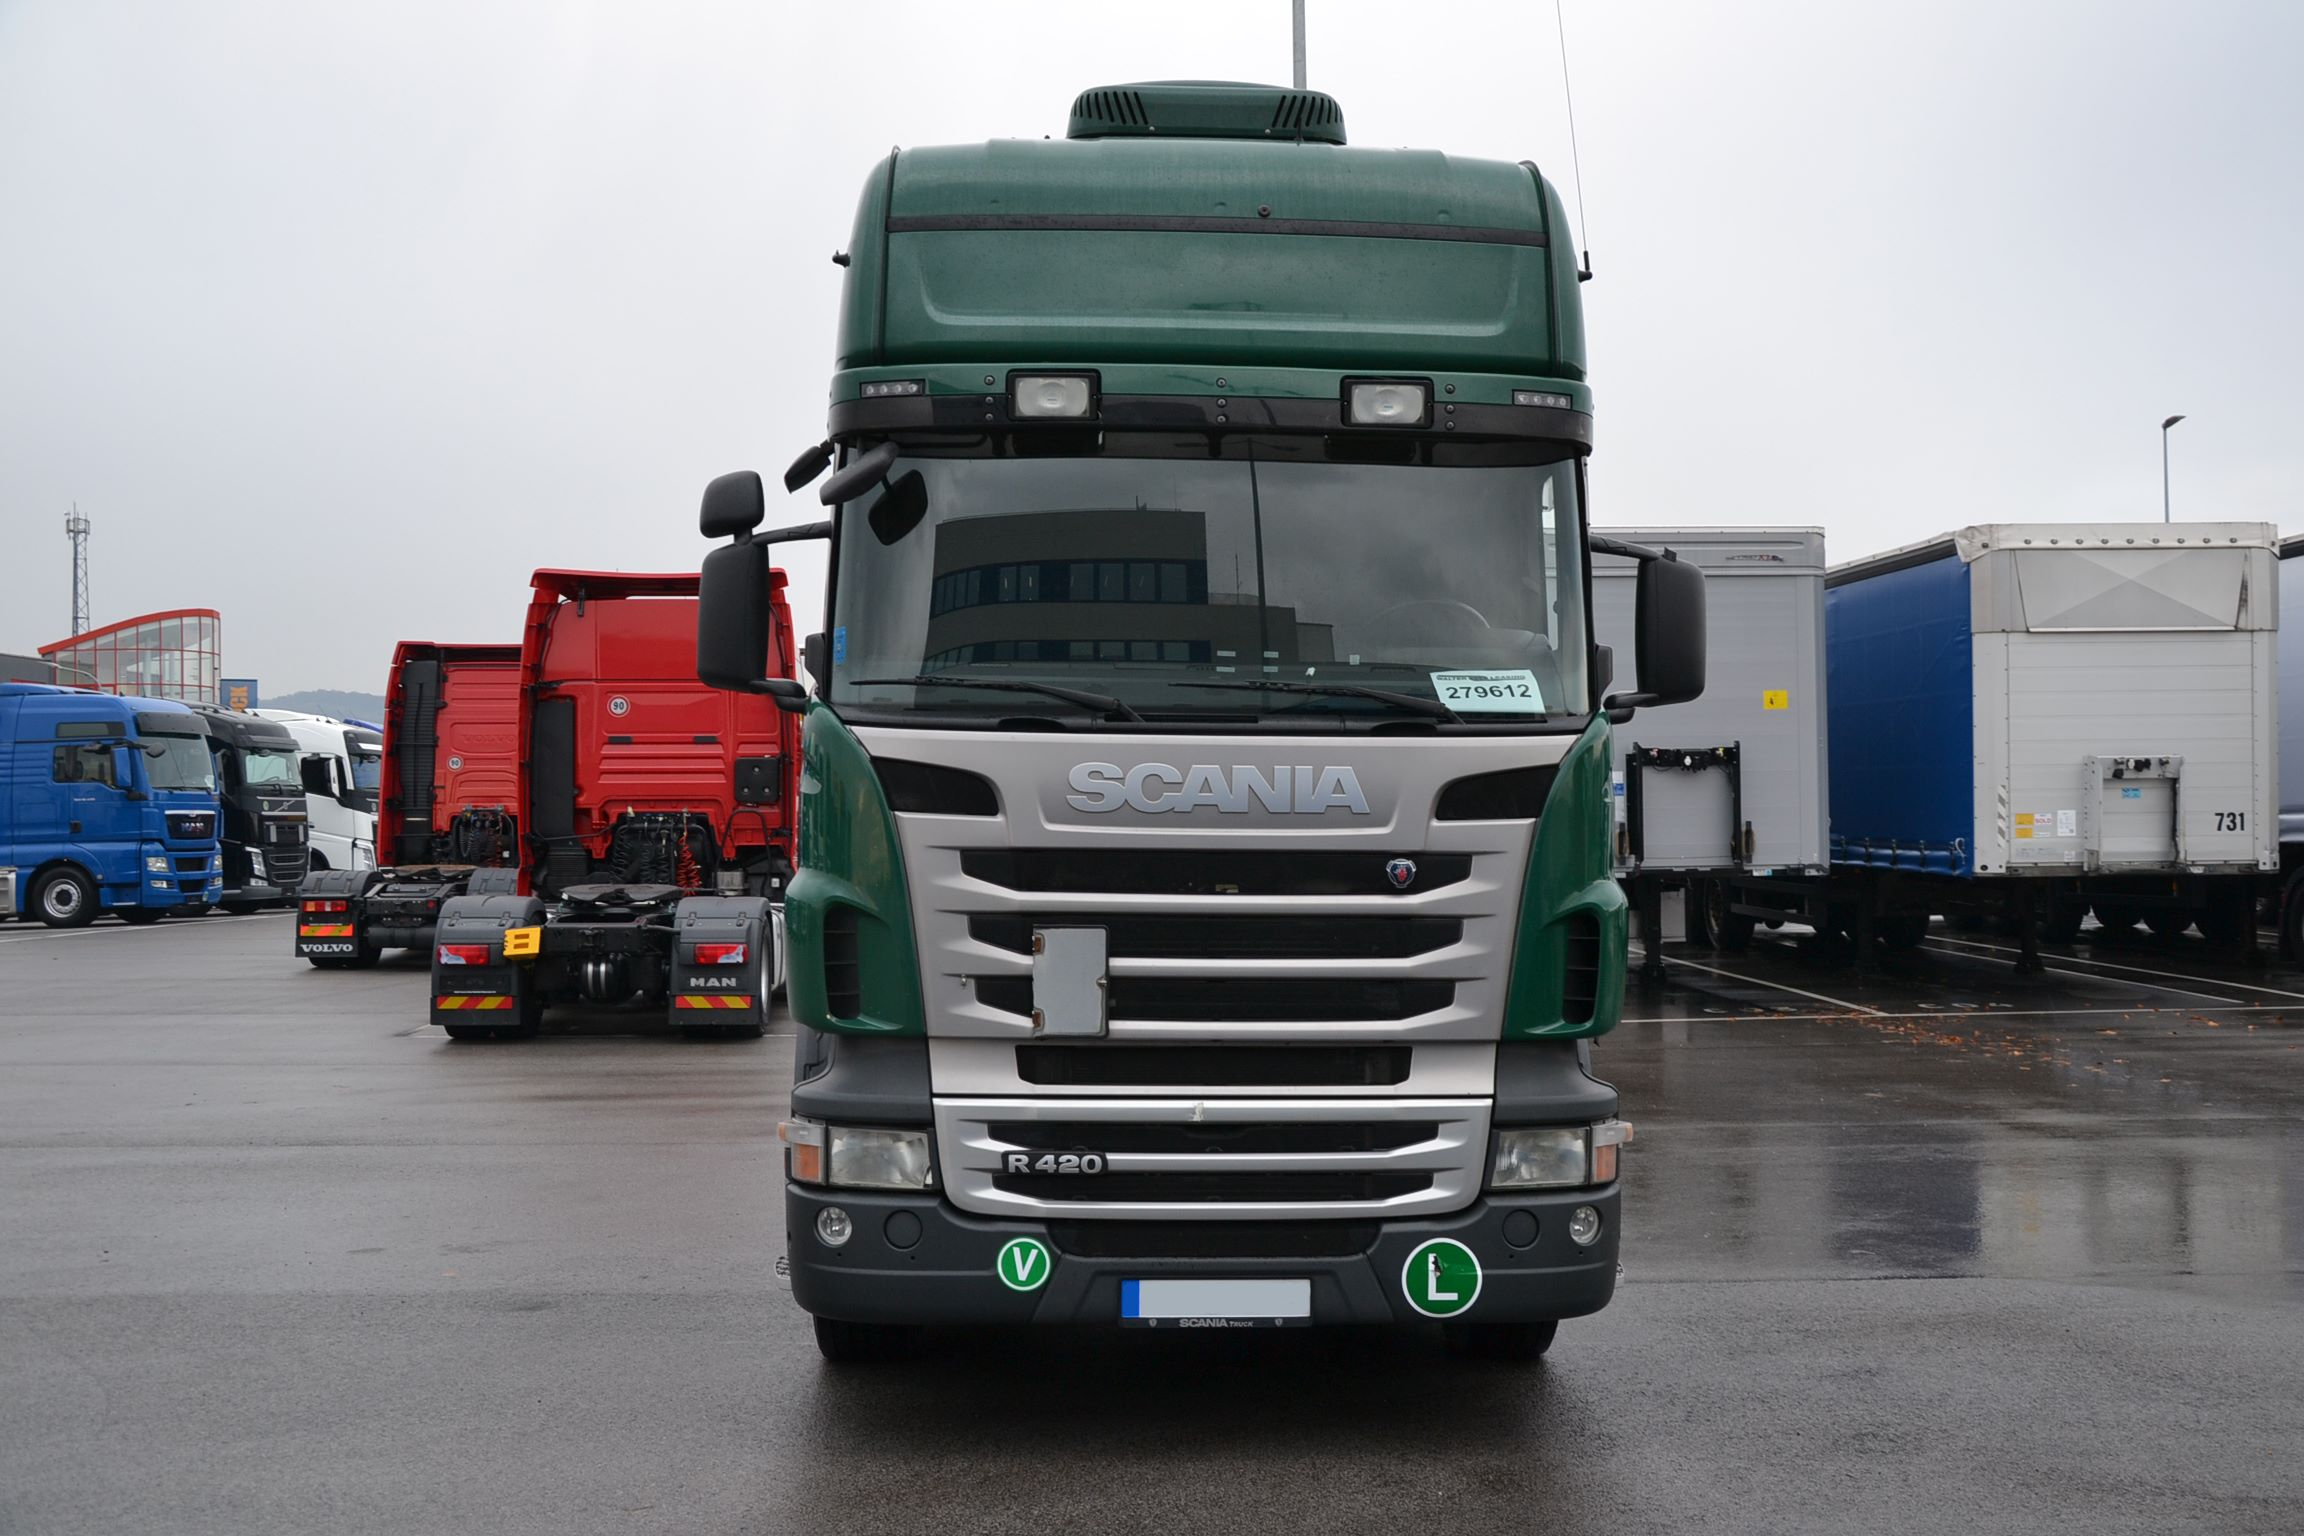 Scania Tractor unit 279612-7